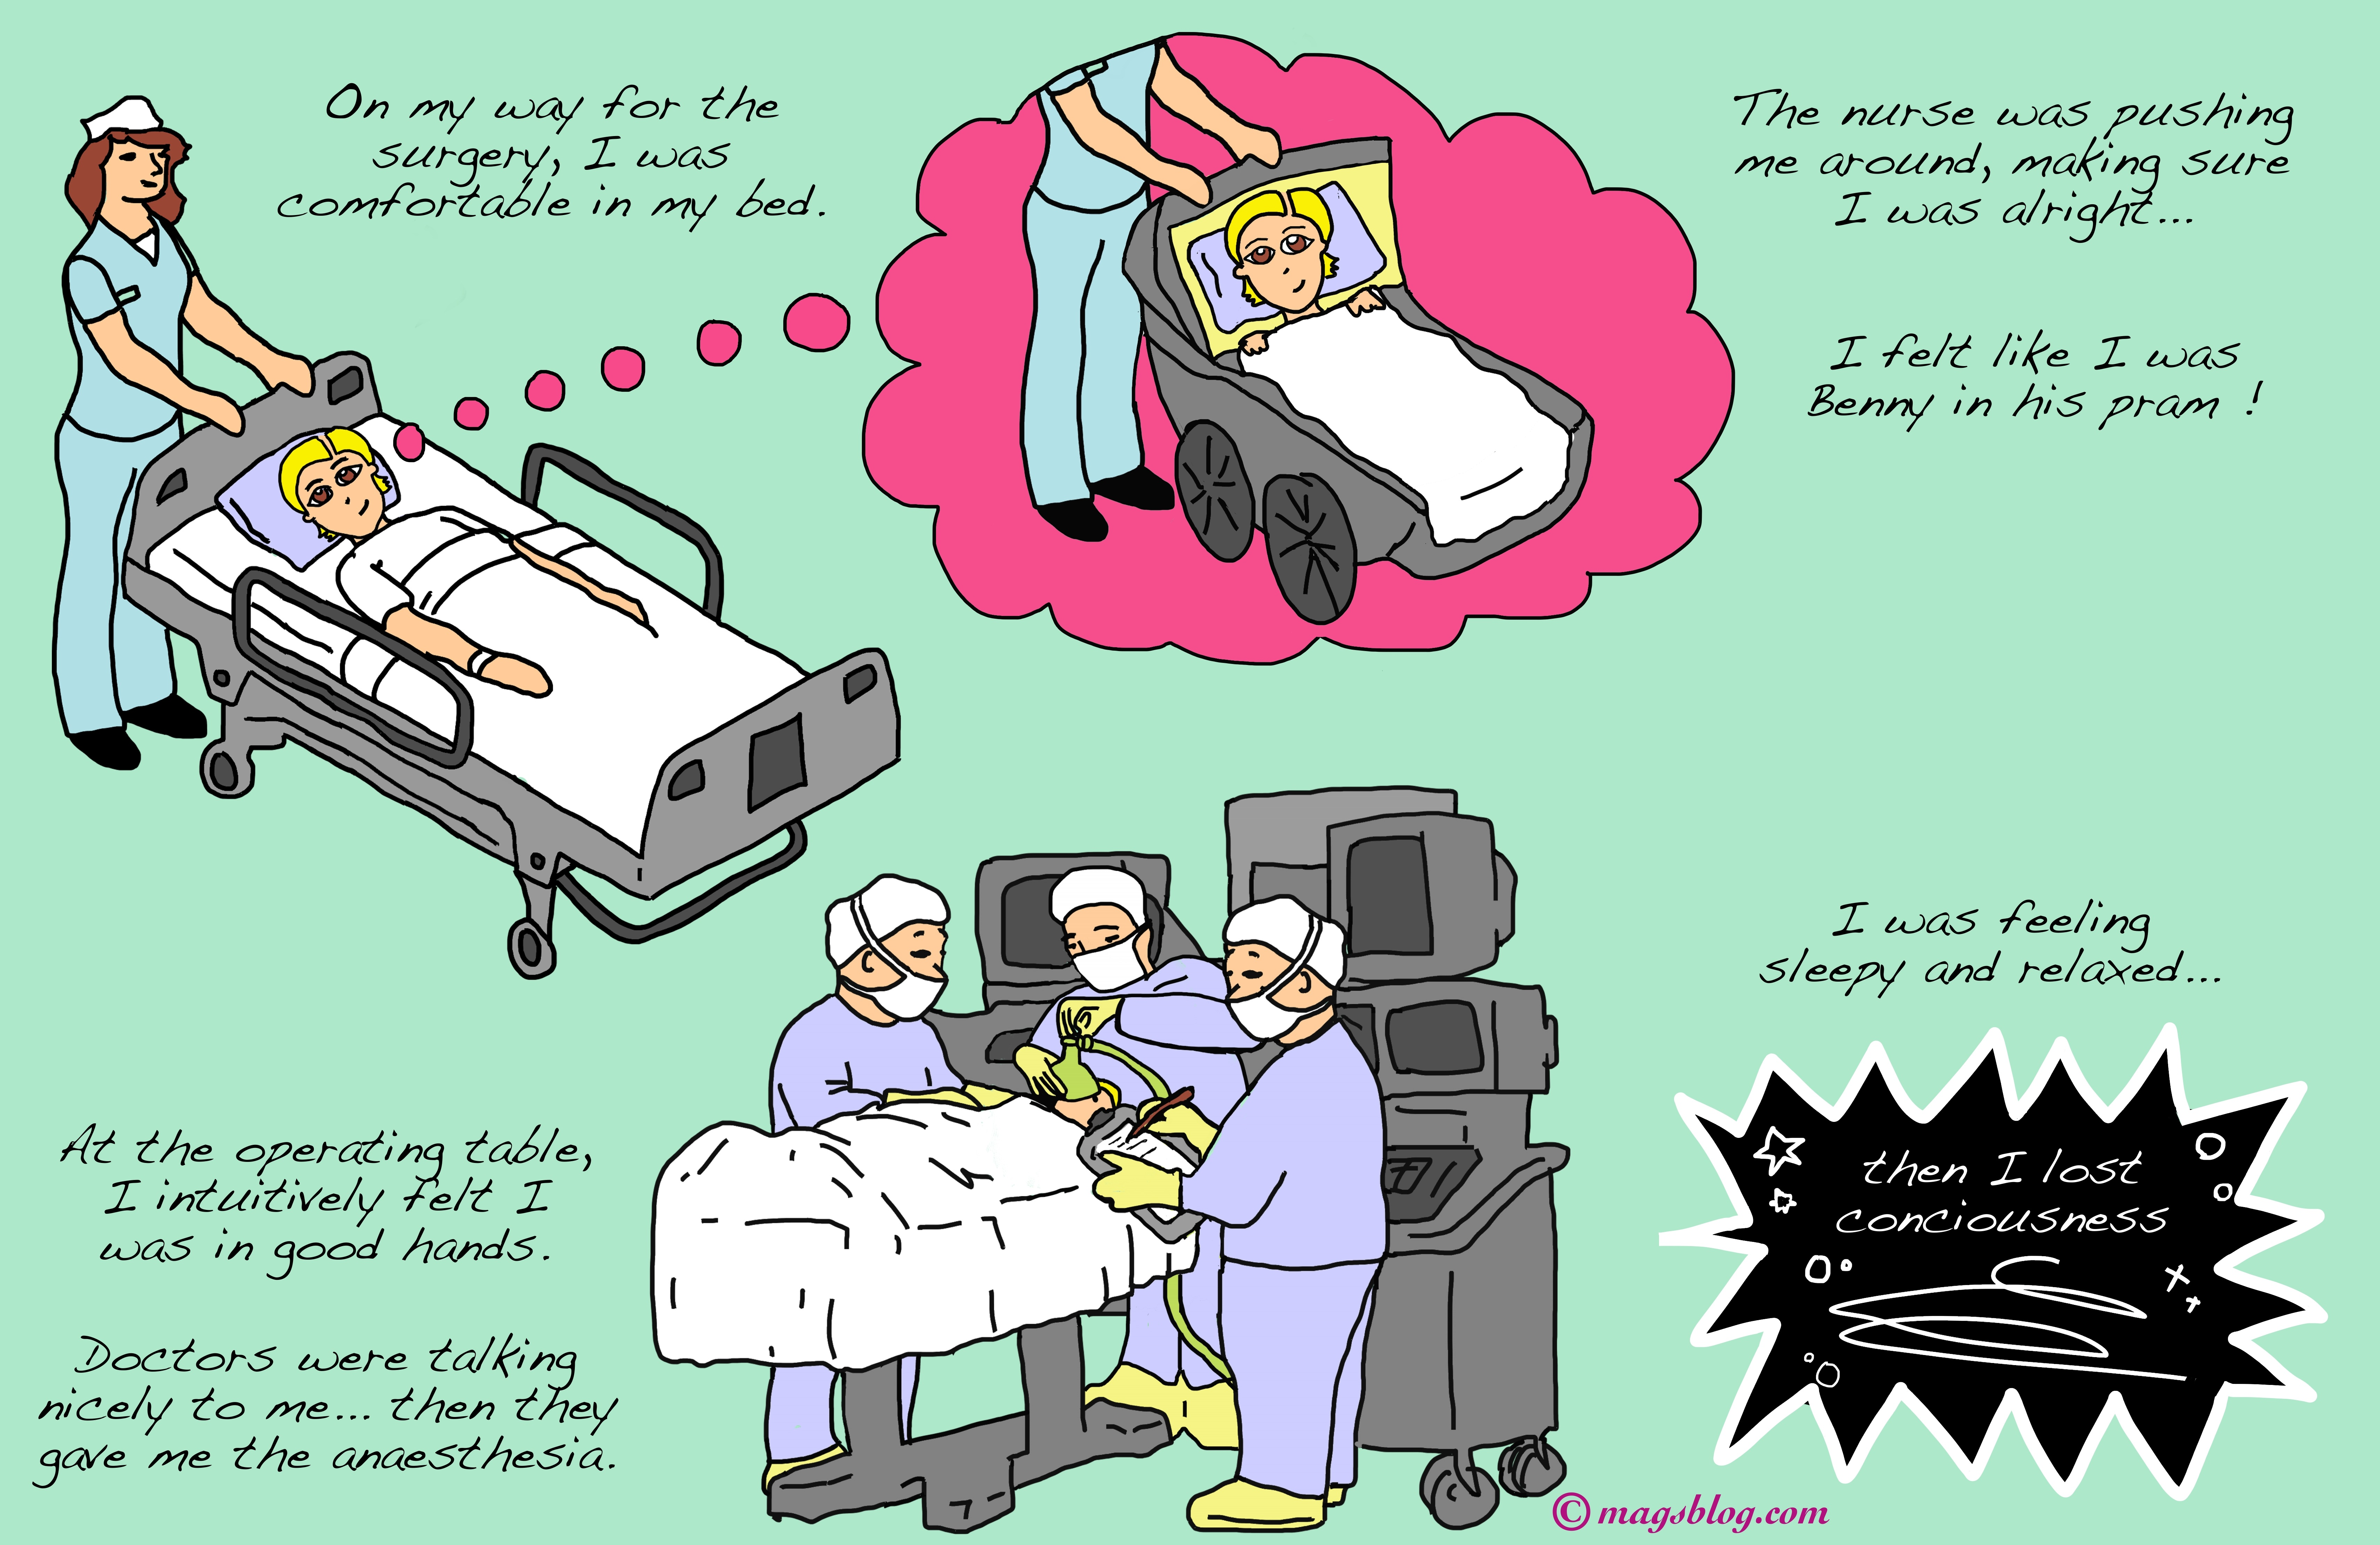 Surgical cartoons surgical cartoon funny surgical picture surgical - 21 The Surgery